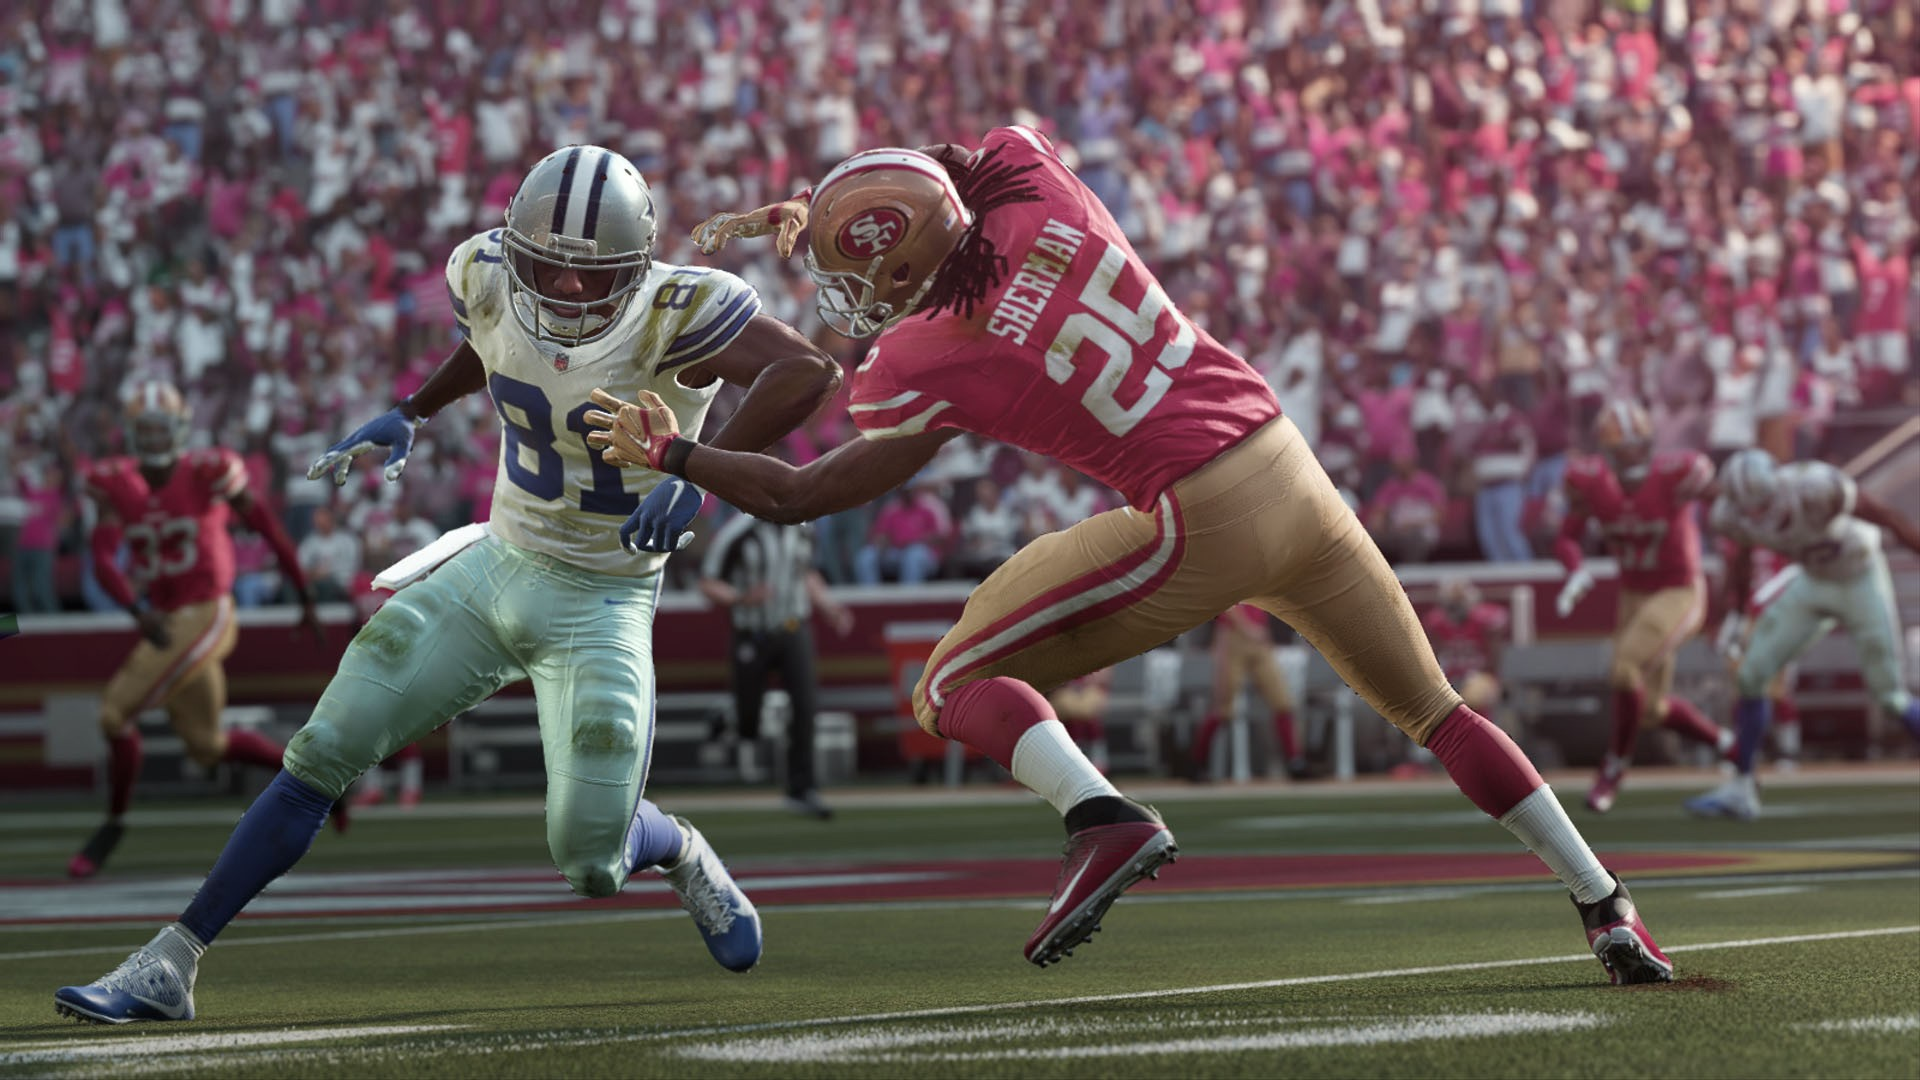 Madden19_gdp_screenshot_legends_to_vs_sherman_1p.jpg